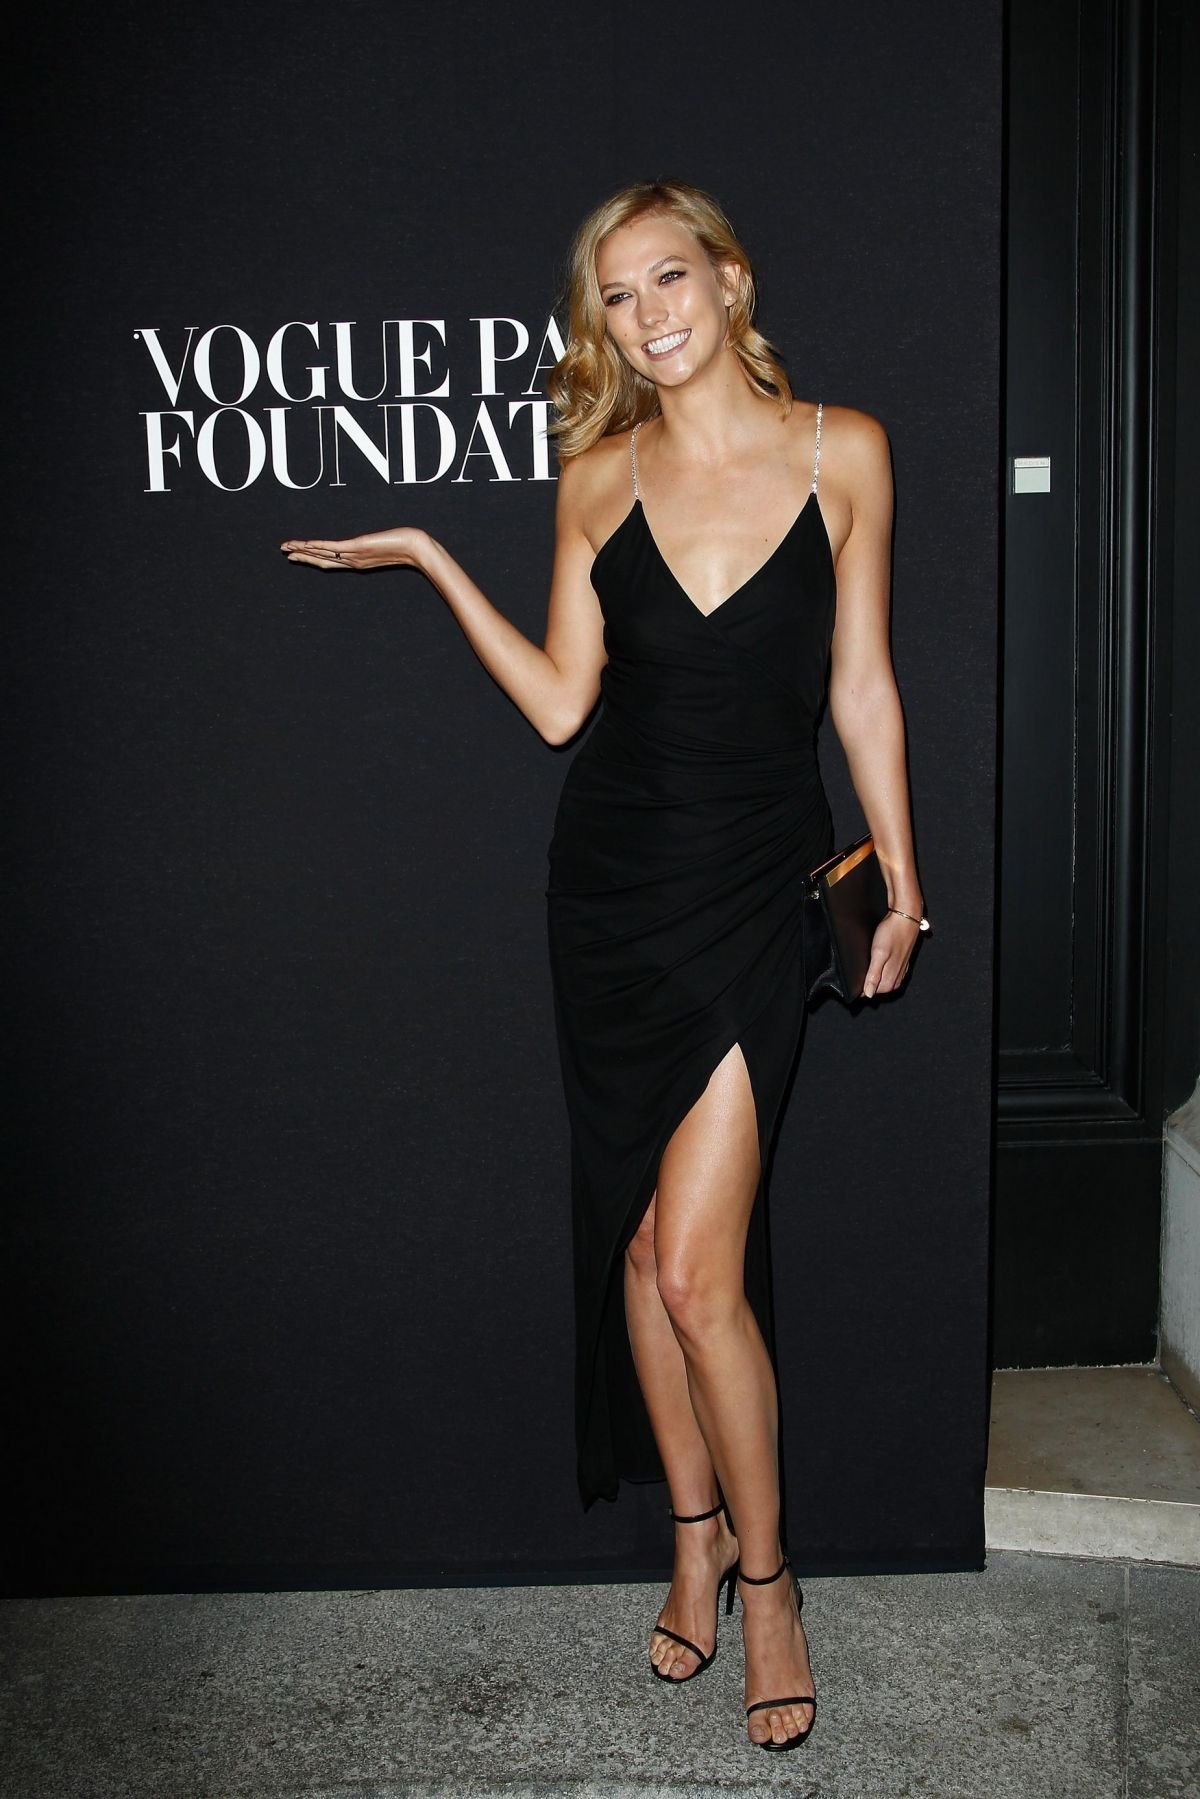 karlie-kloss-at-vogue-foundation-gala-dinner_1